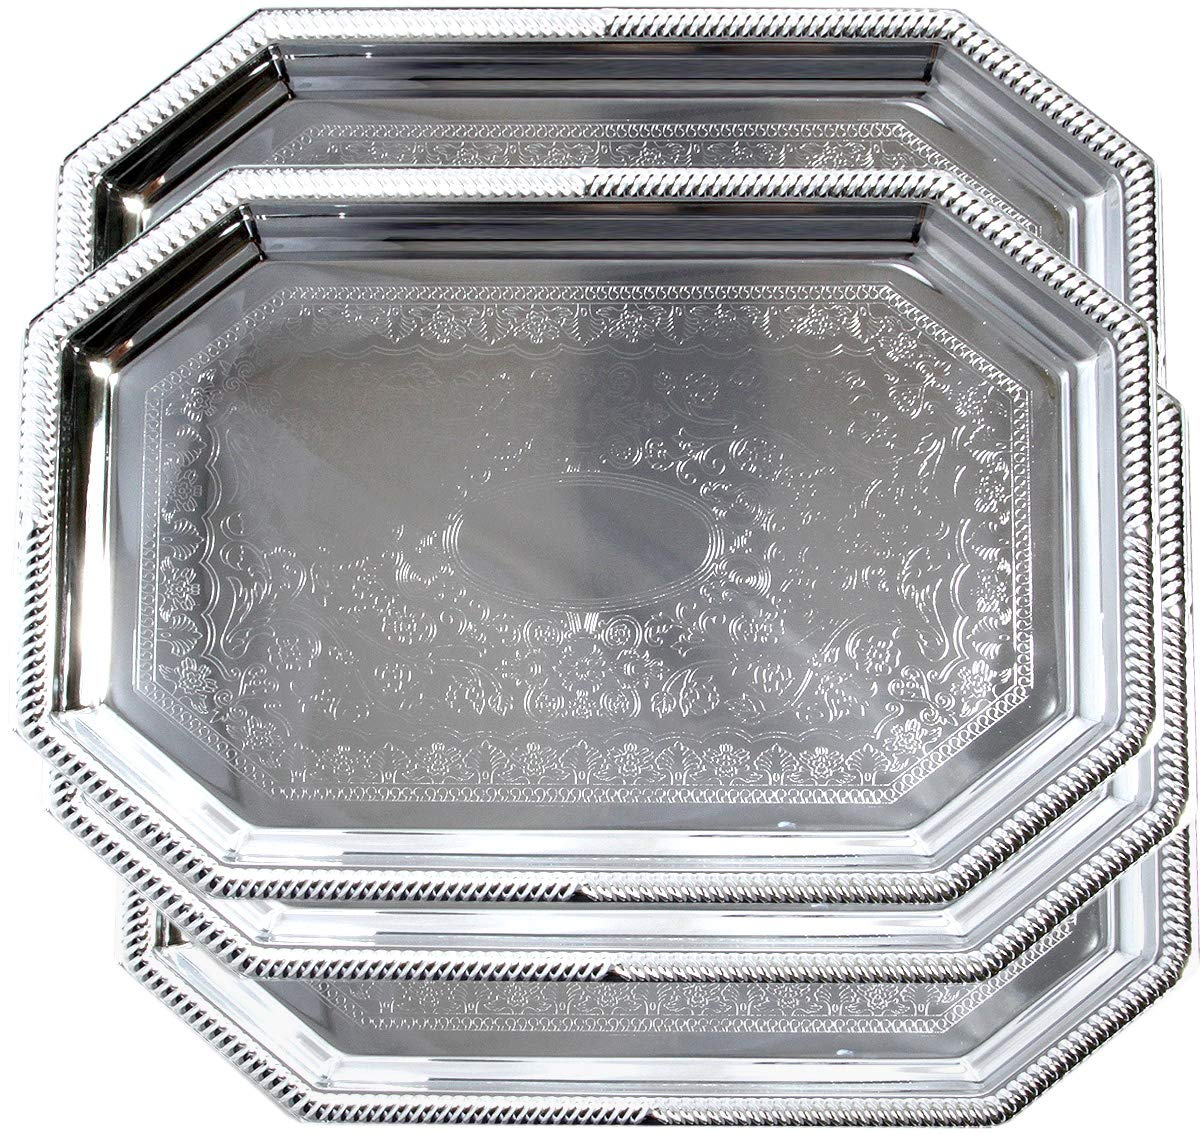 Maro Megastore (Pack of 4) 20.1'' x 13.8'' Octagonal Floral Victoria Engraved Cater Chrome Plated Serving Plate Mirror Serving Tray Platter Food Art Presentation Wedding Birthday Party (Large) T155L-4PK by Maro Megastore